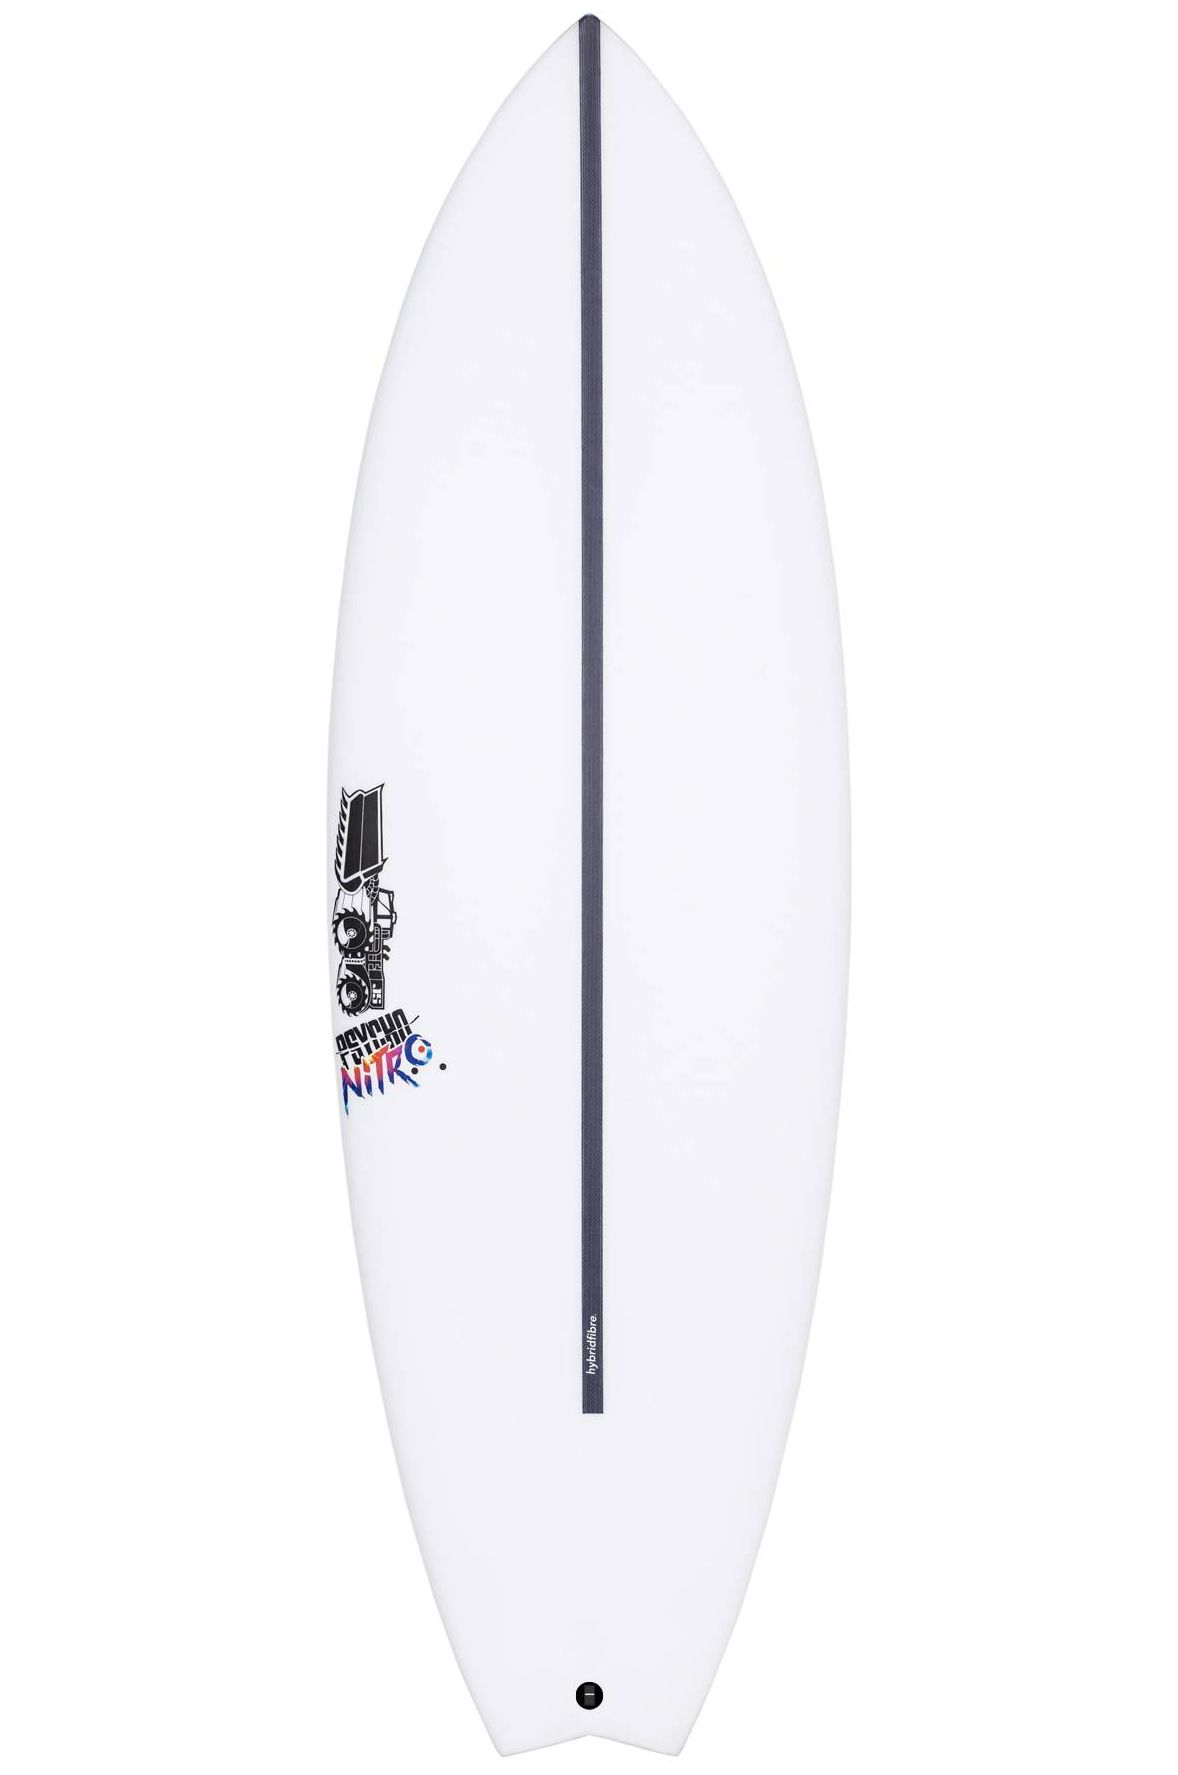 Prancha Surf JS PSYCHO NITRO HYFI Swallow Tail - White FCS II Multisystem 5ft4